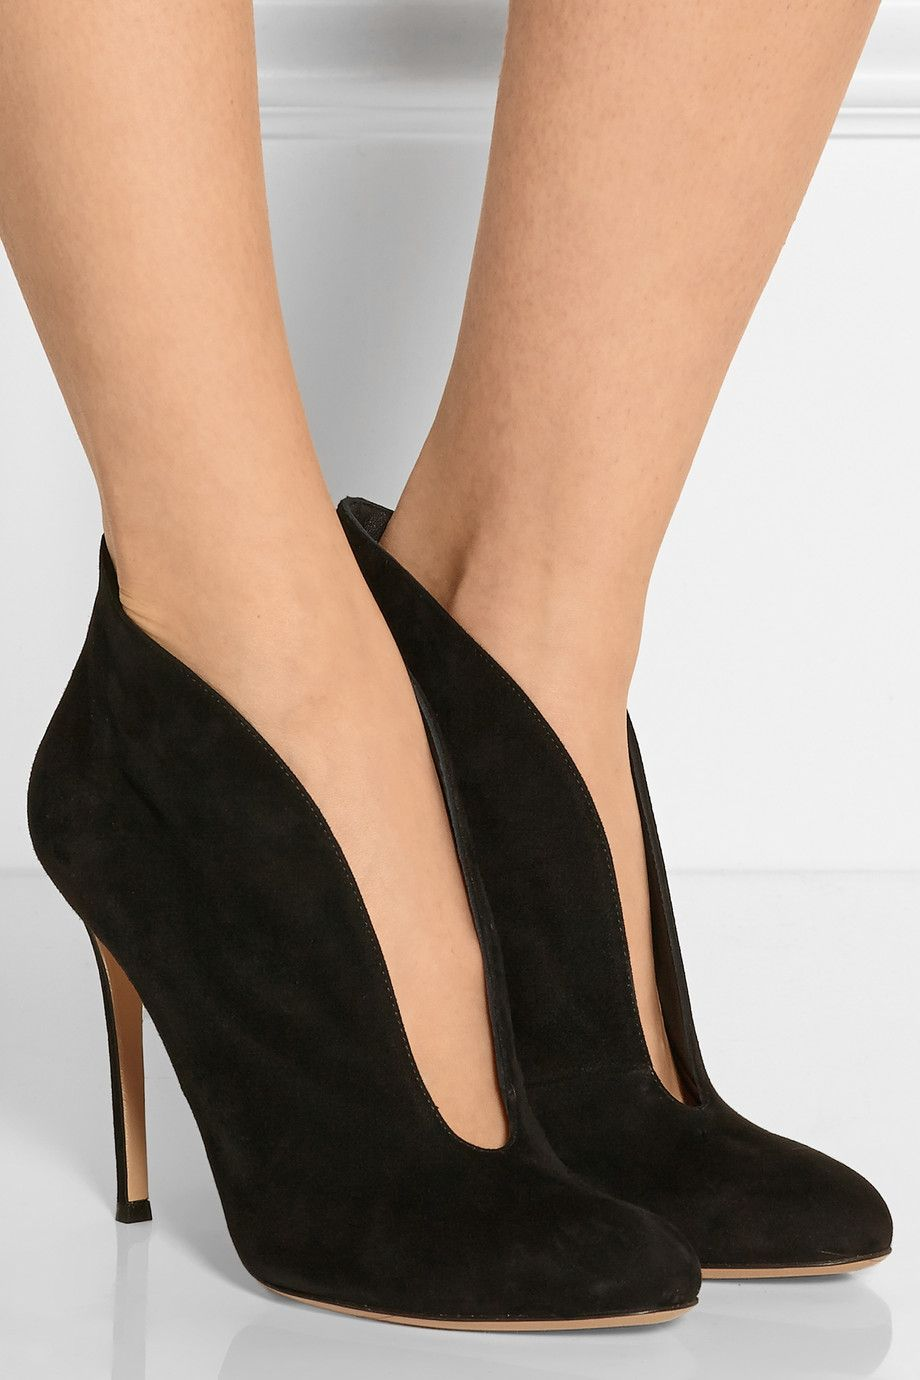 Gianvito Rossi Vamp Suede Ankle Booties cheap authentic outlet outlet new arrival cheap sale browse cheap sale get to buy clearance shopping online Lc1n3IxOQ